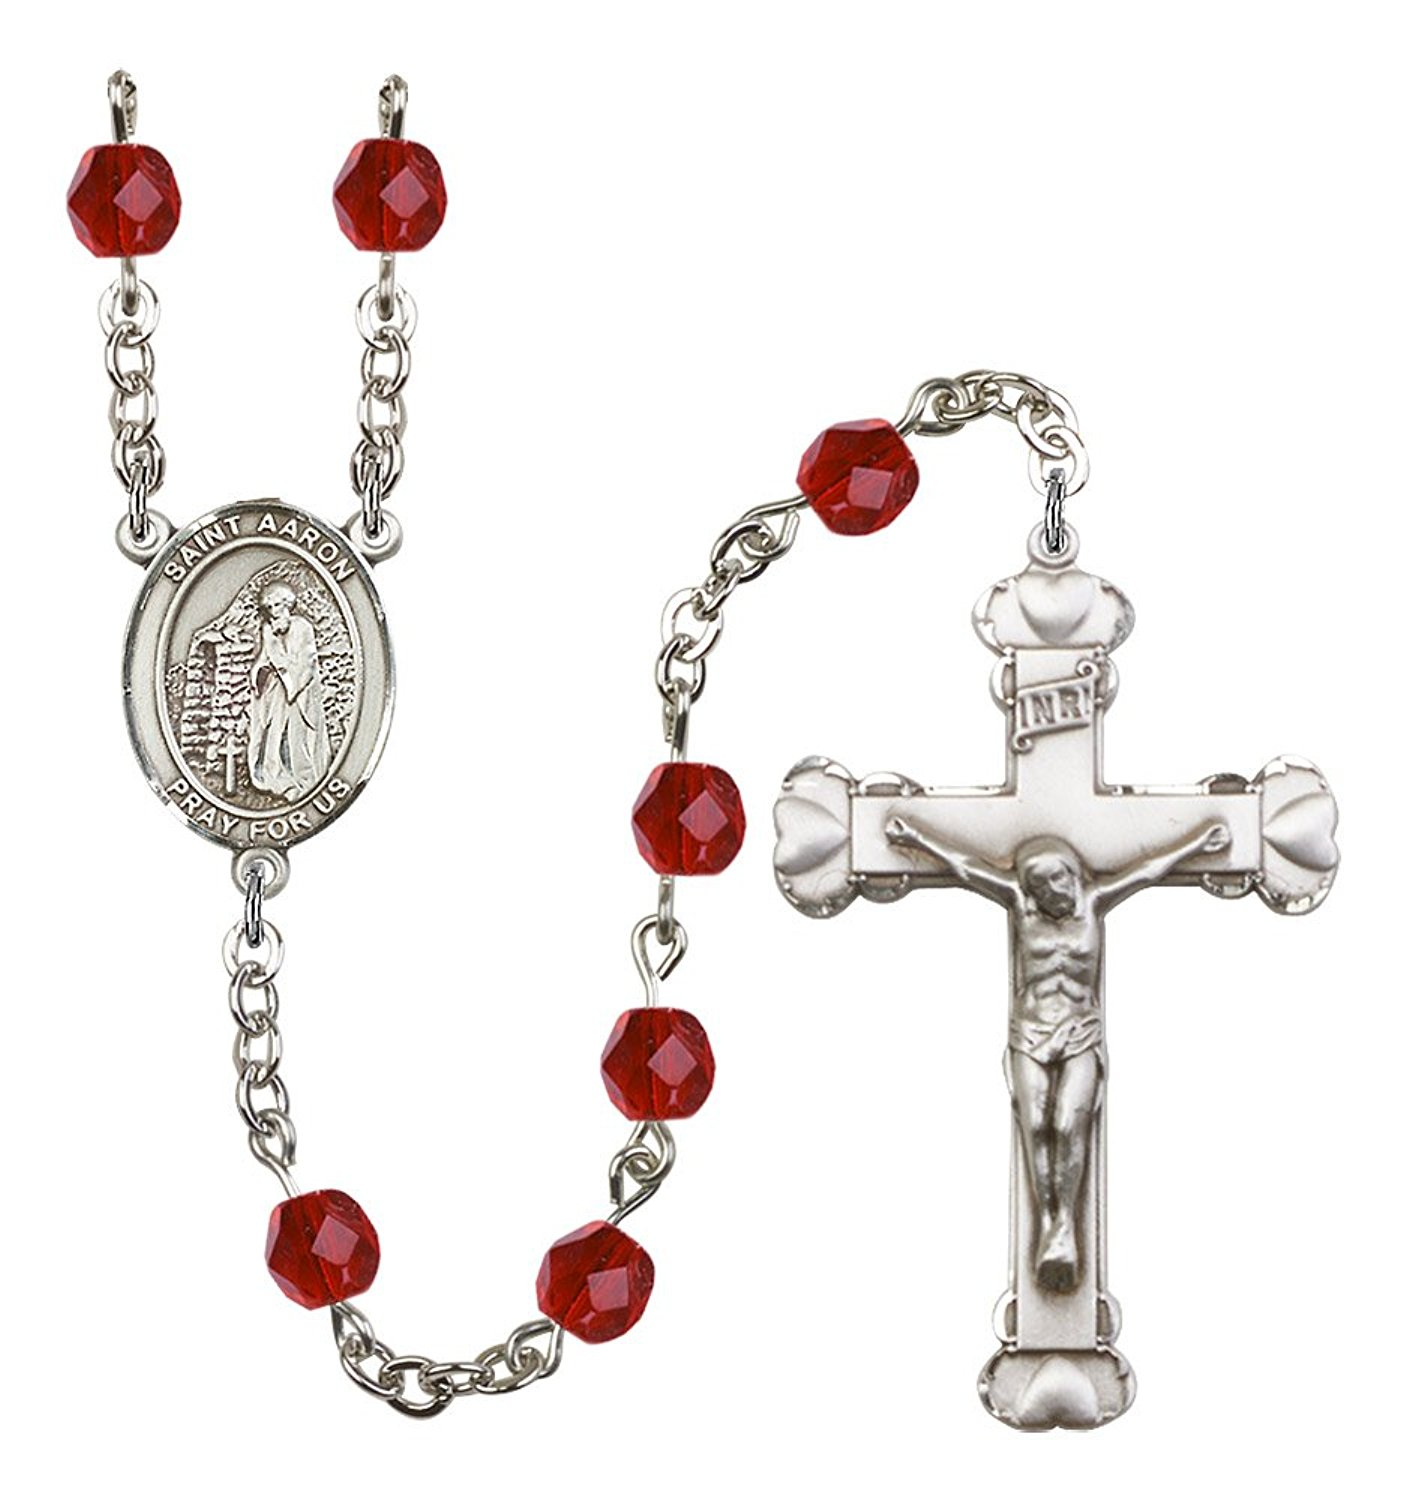 Silver Finish St. Aaron Rosary with 6mm Ruby Color Fire Polished Beads, St. Aaron Center, and 1 5/8 x 1 inch Crucifix, Gift Boxed